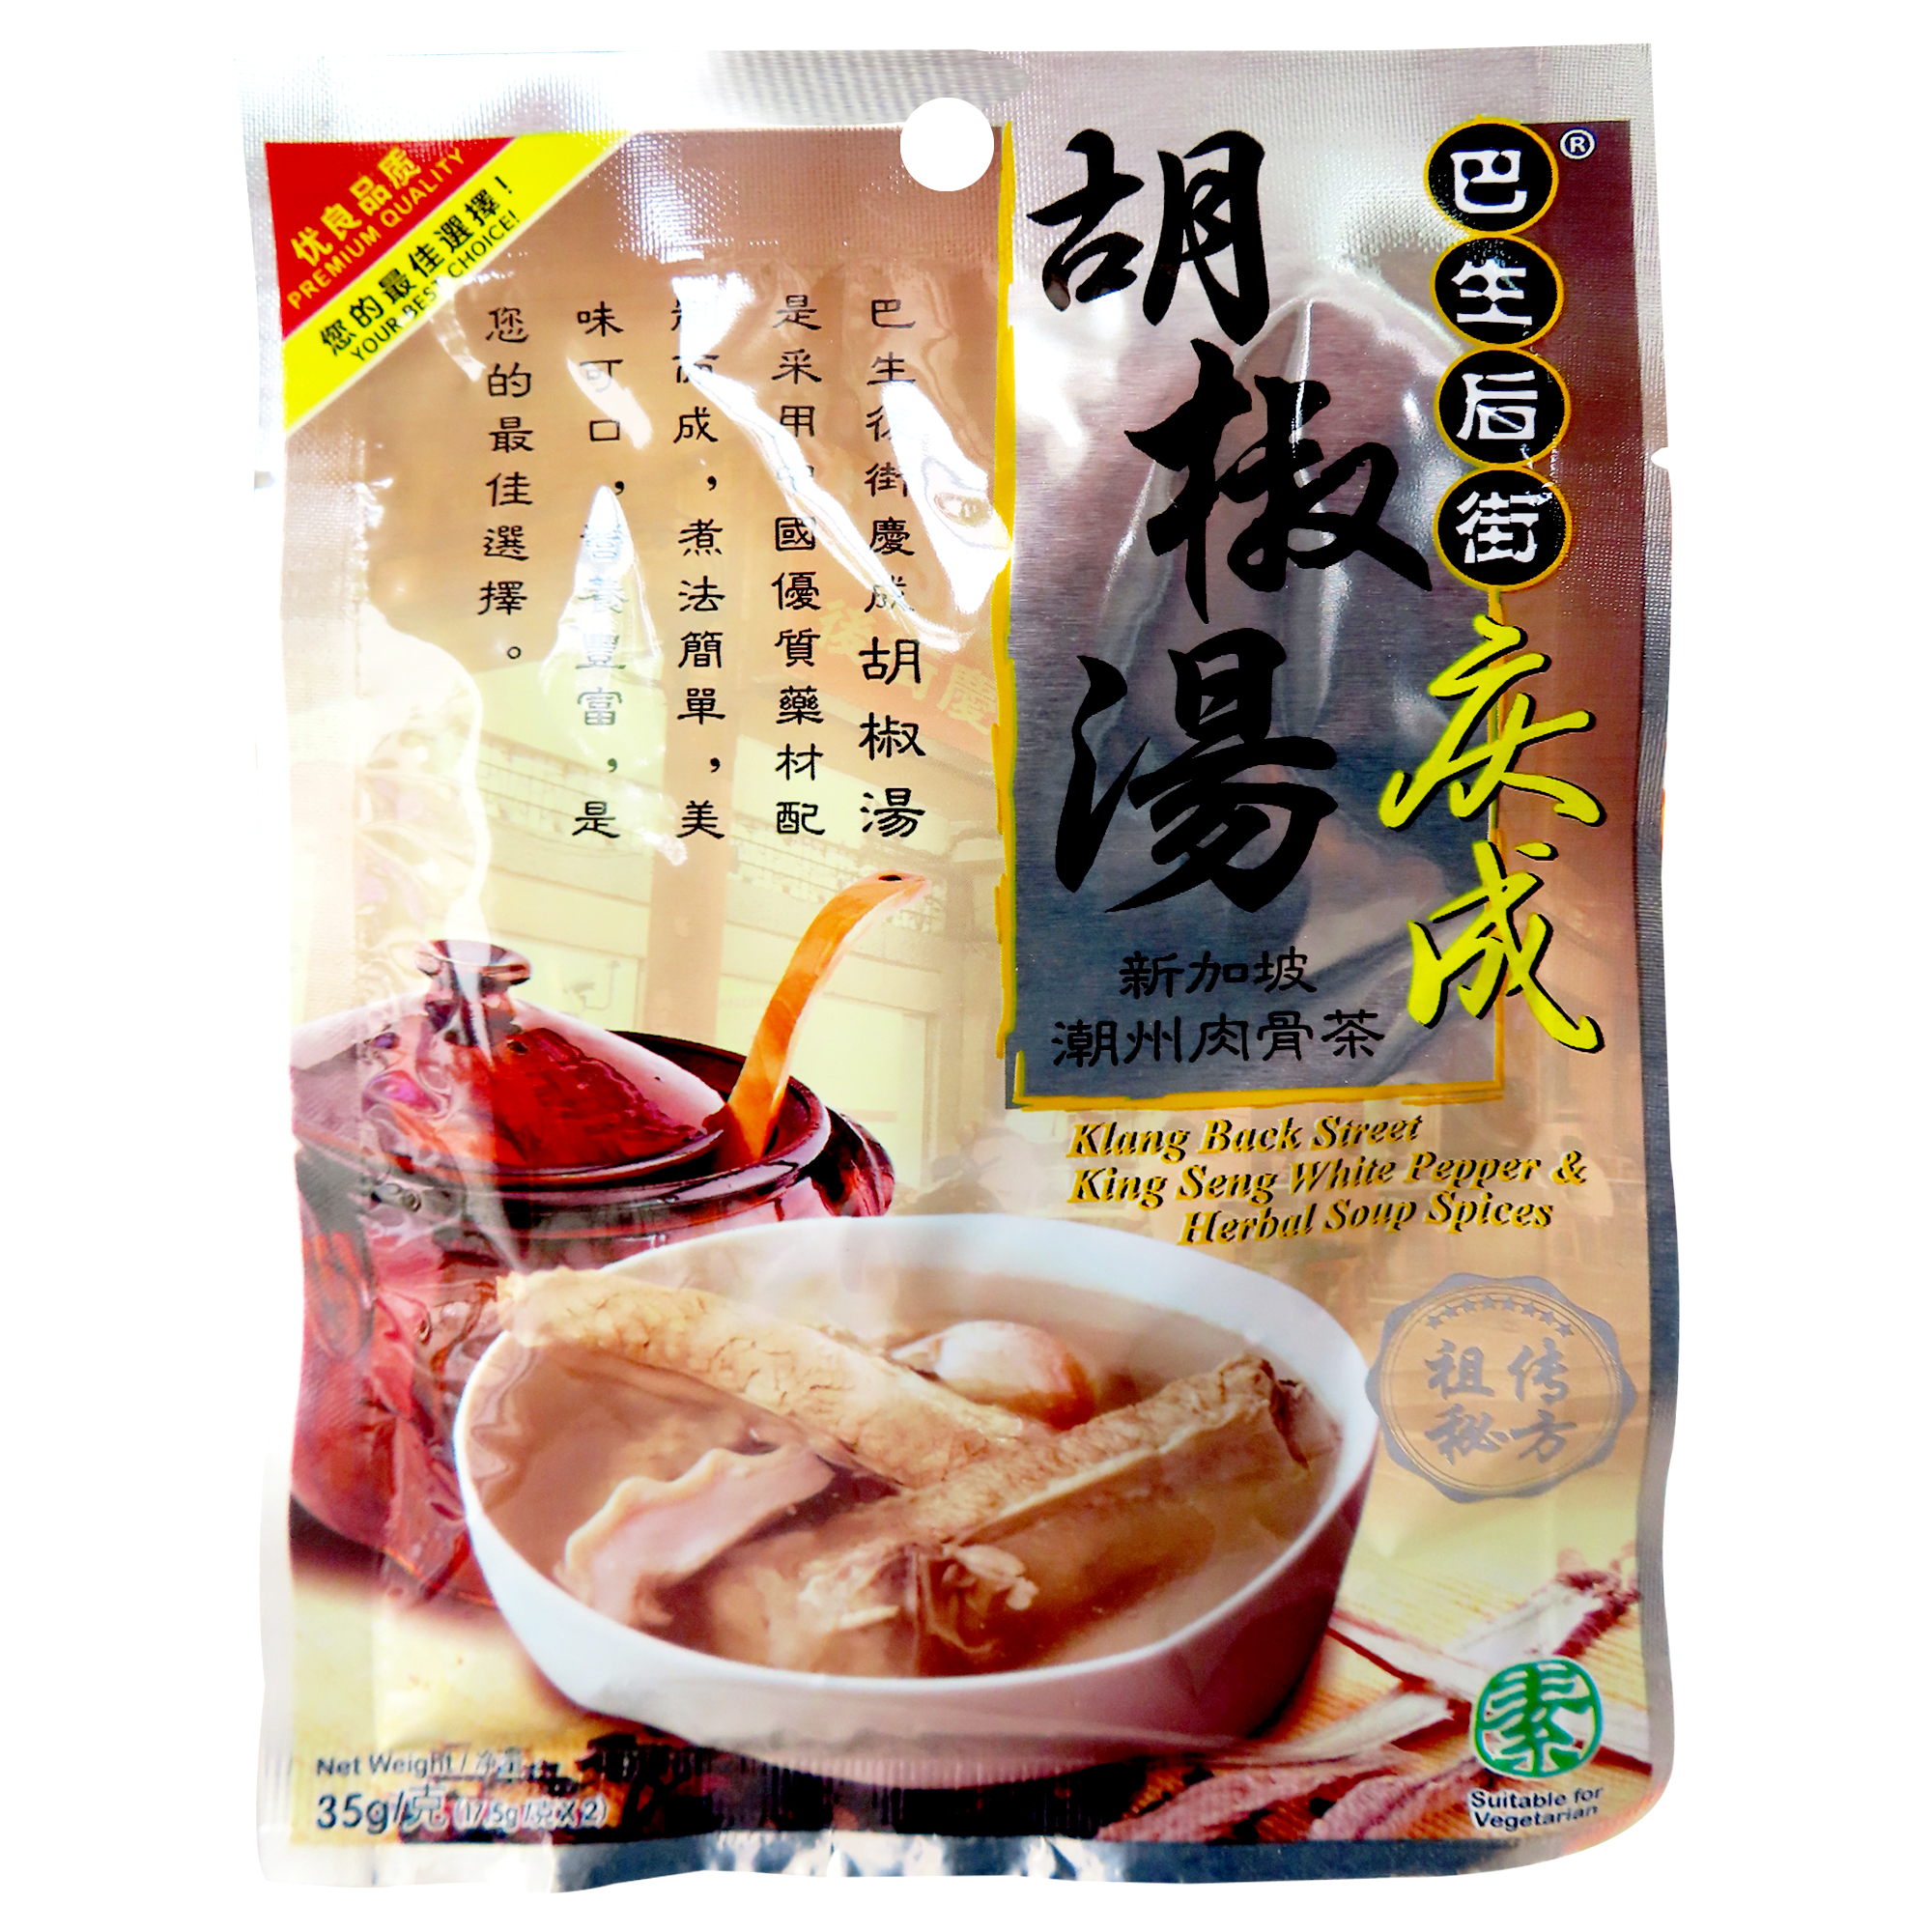 Image White Pepper & Herbal Soup Spices 庆成 - 胡椒汤 35grams